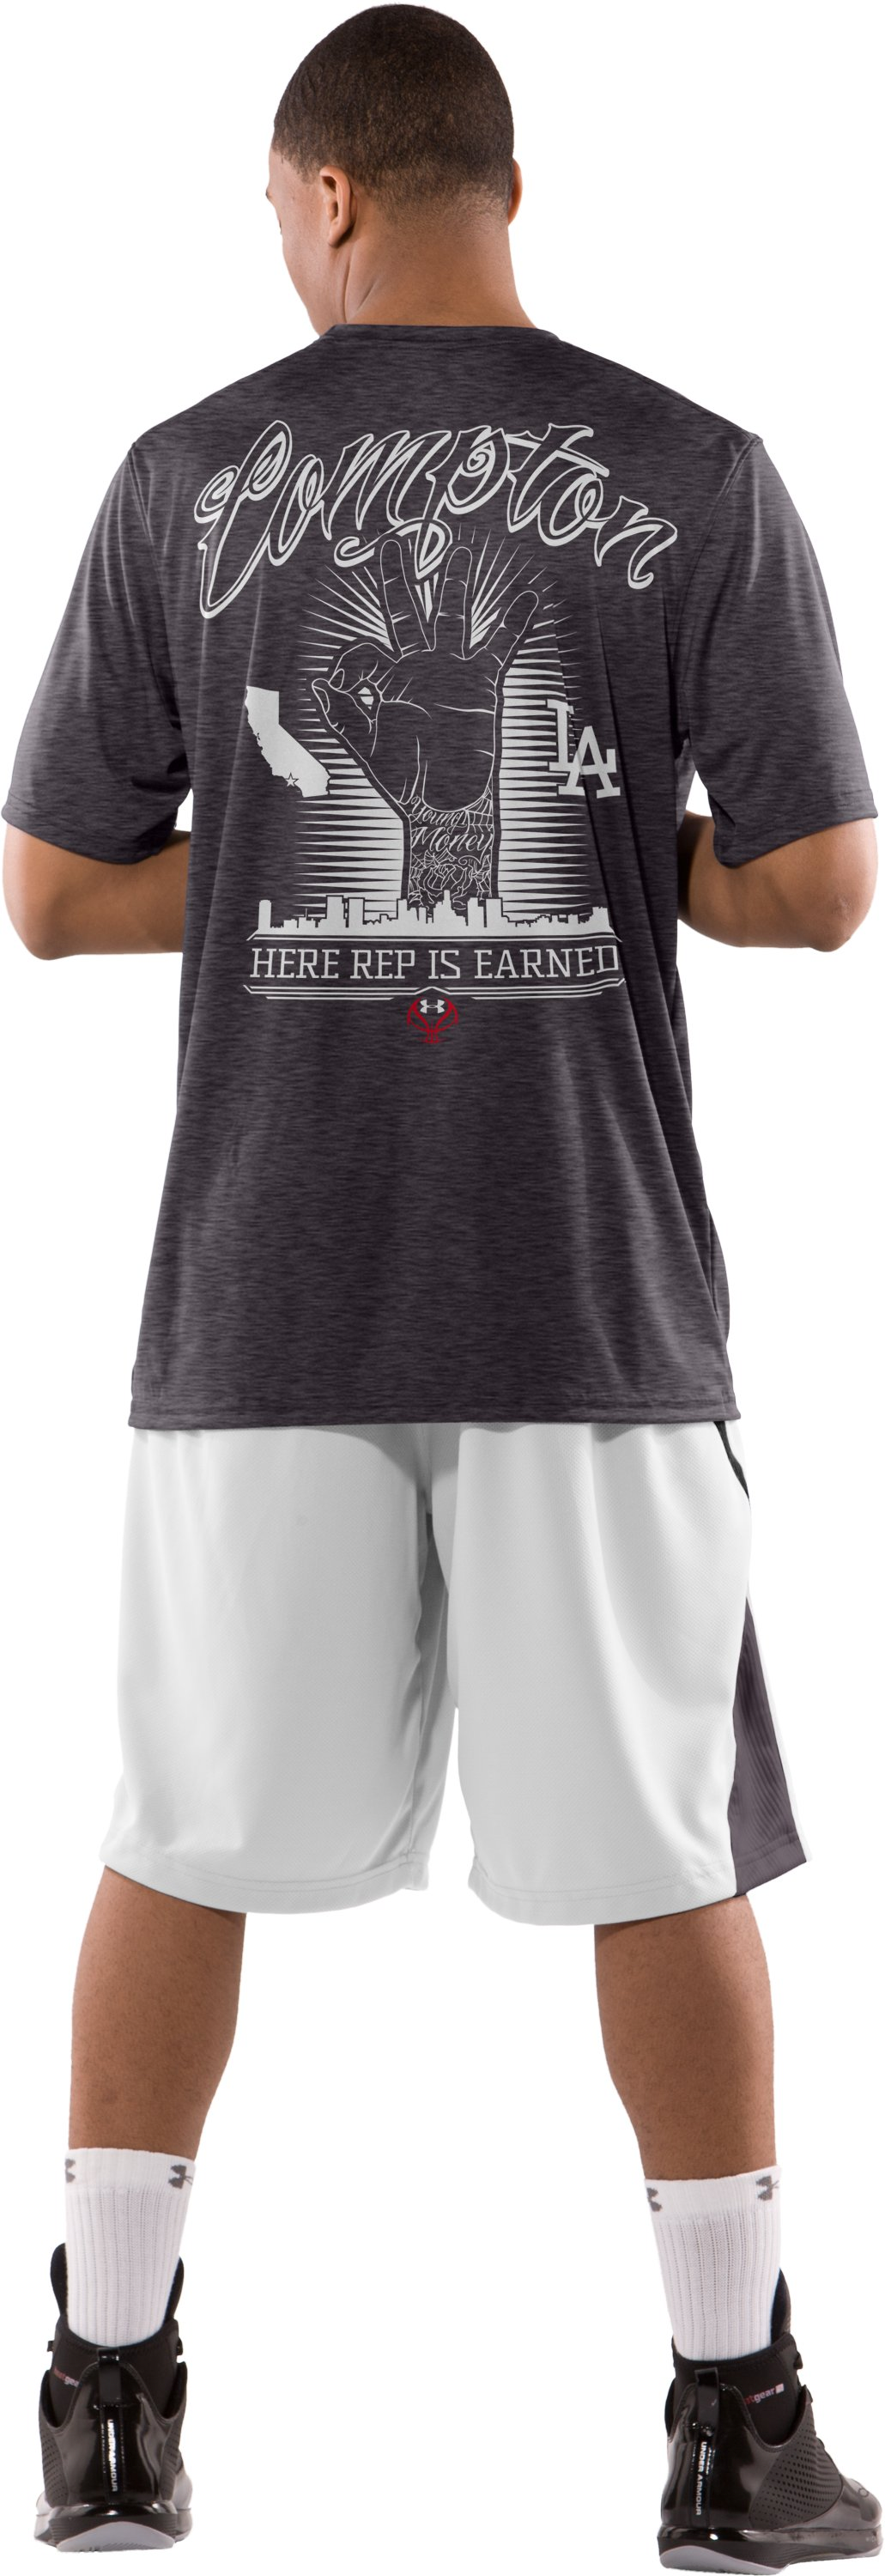 Men's Brandon Jennings Player Reppin' T-Shirt, Carbon Heather, Back